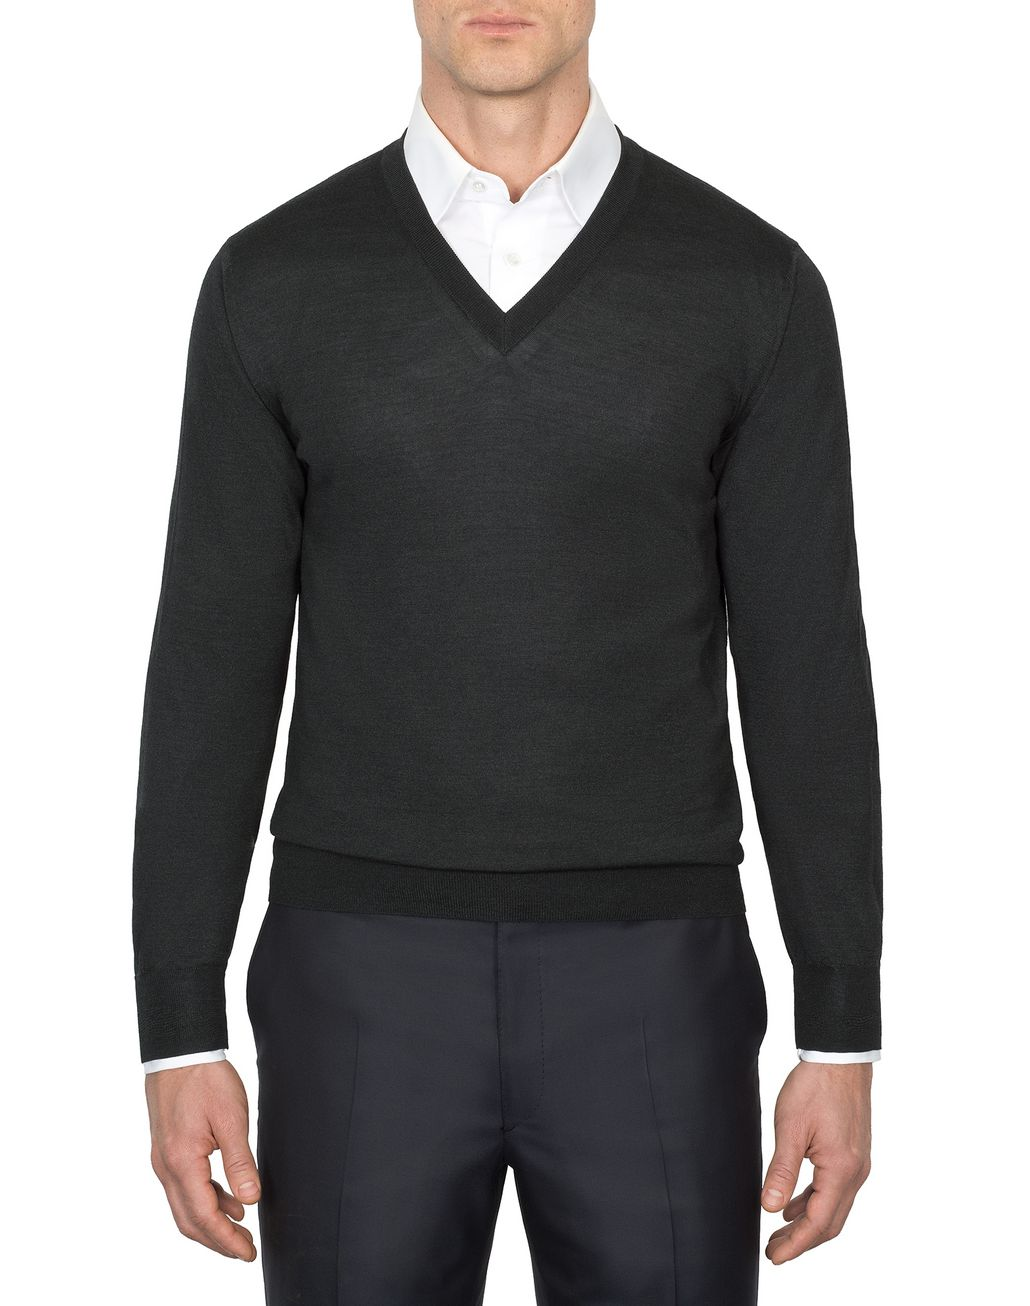 BRIONI Anthracite Gray V-Neck Sweater Knitwear Man r